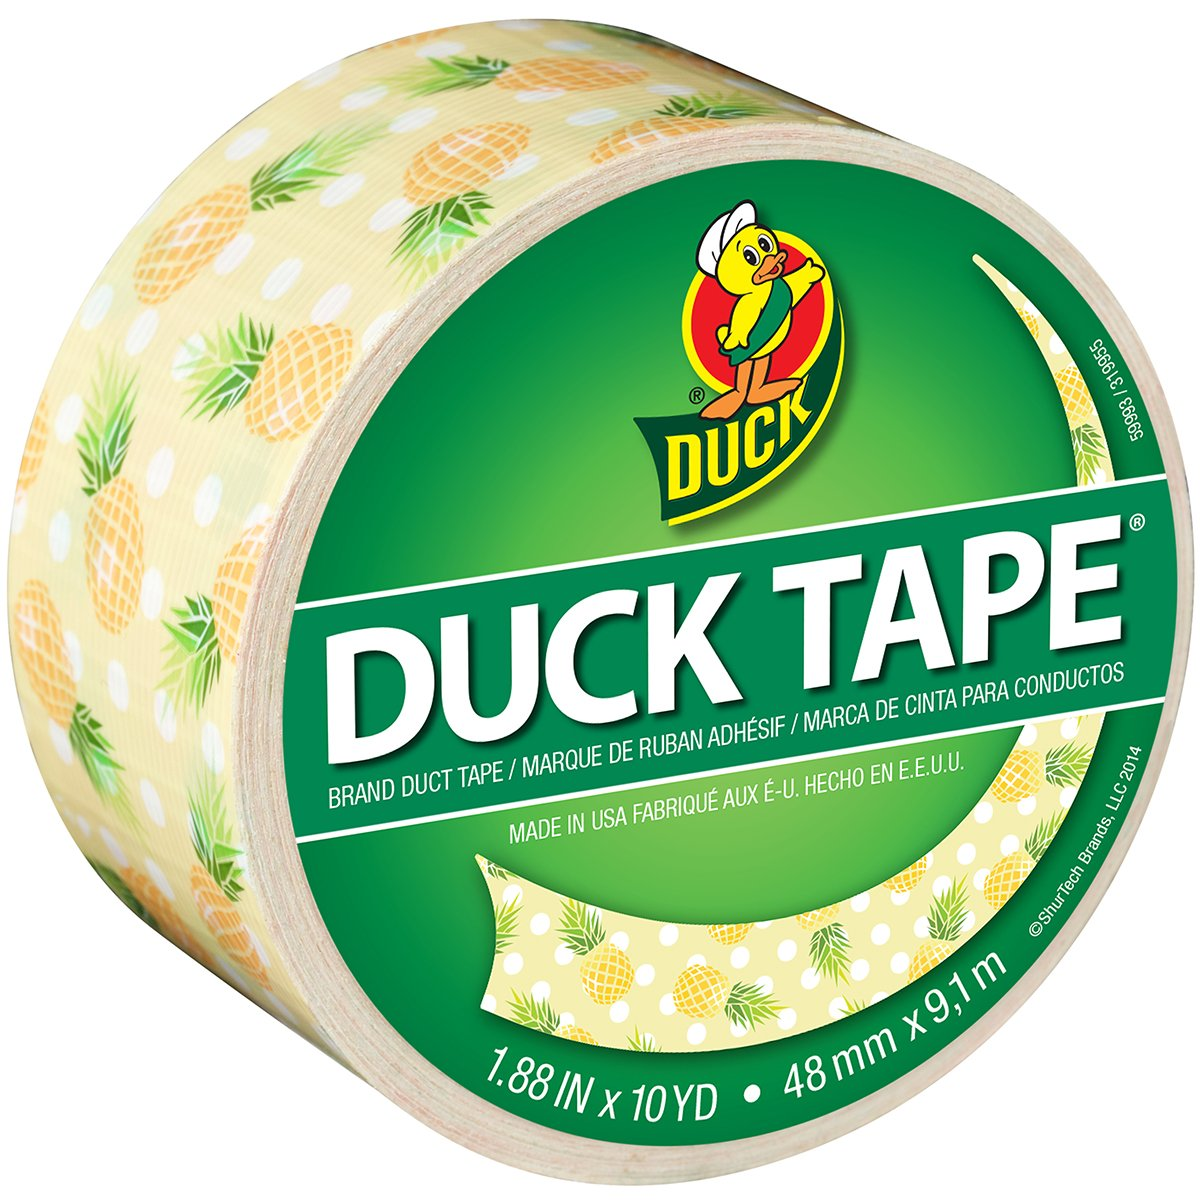 Multicolor Duck Brand 241792 Duct Tape 3.5 X 3.5 X 2